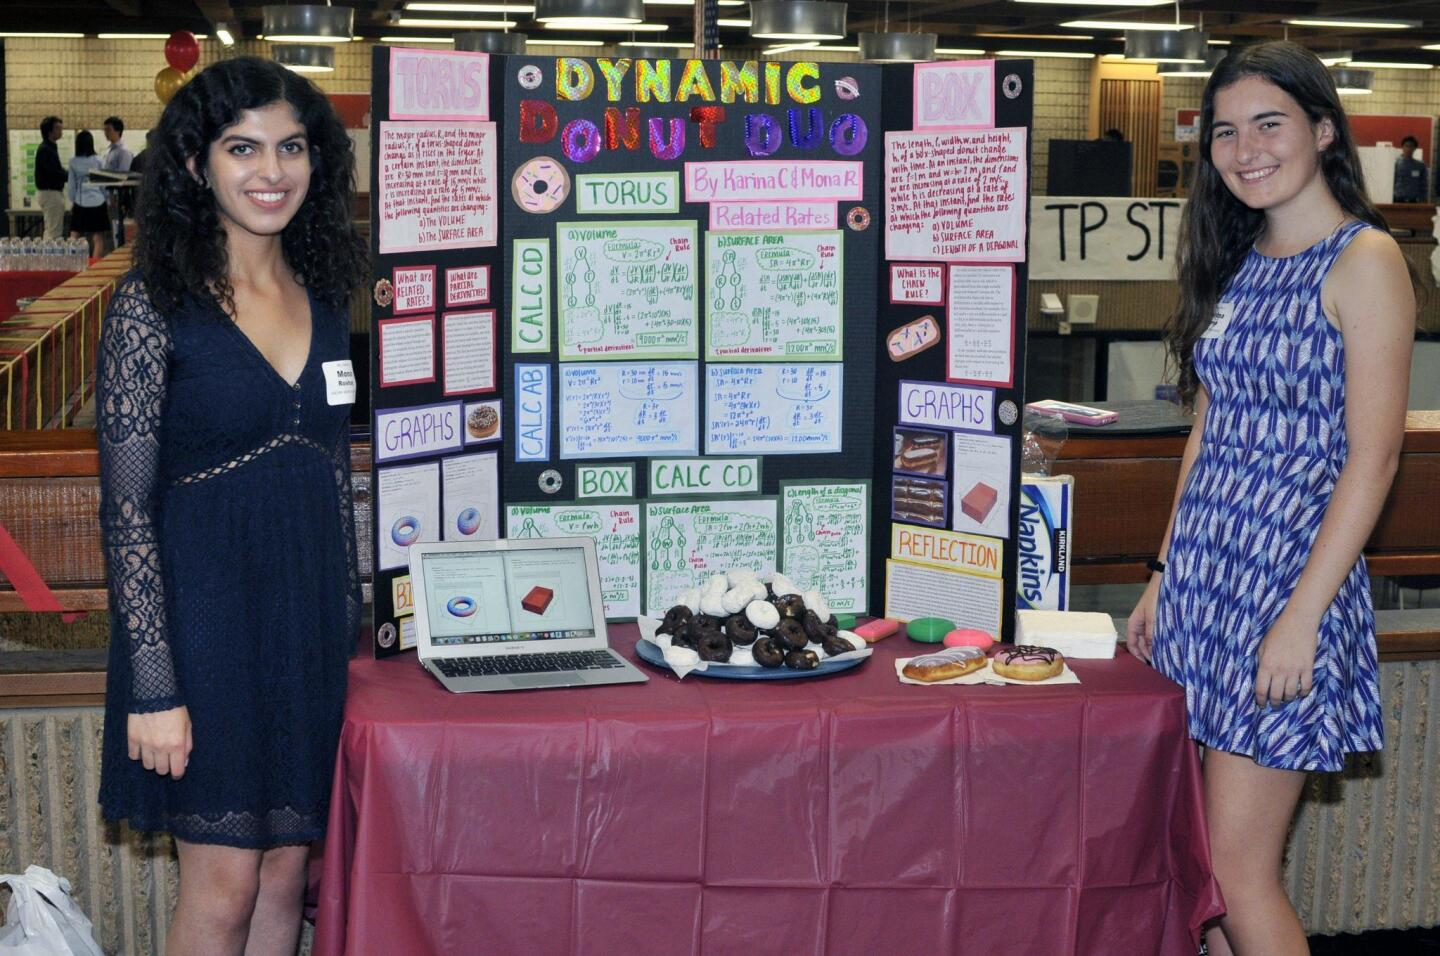 Mona Roshan and Karina Camp with their 'Dynamic Donut Duo' project